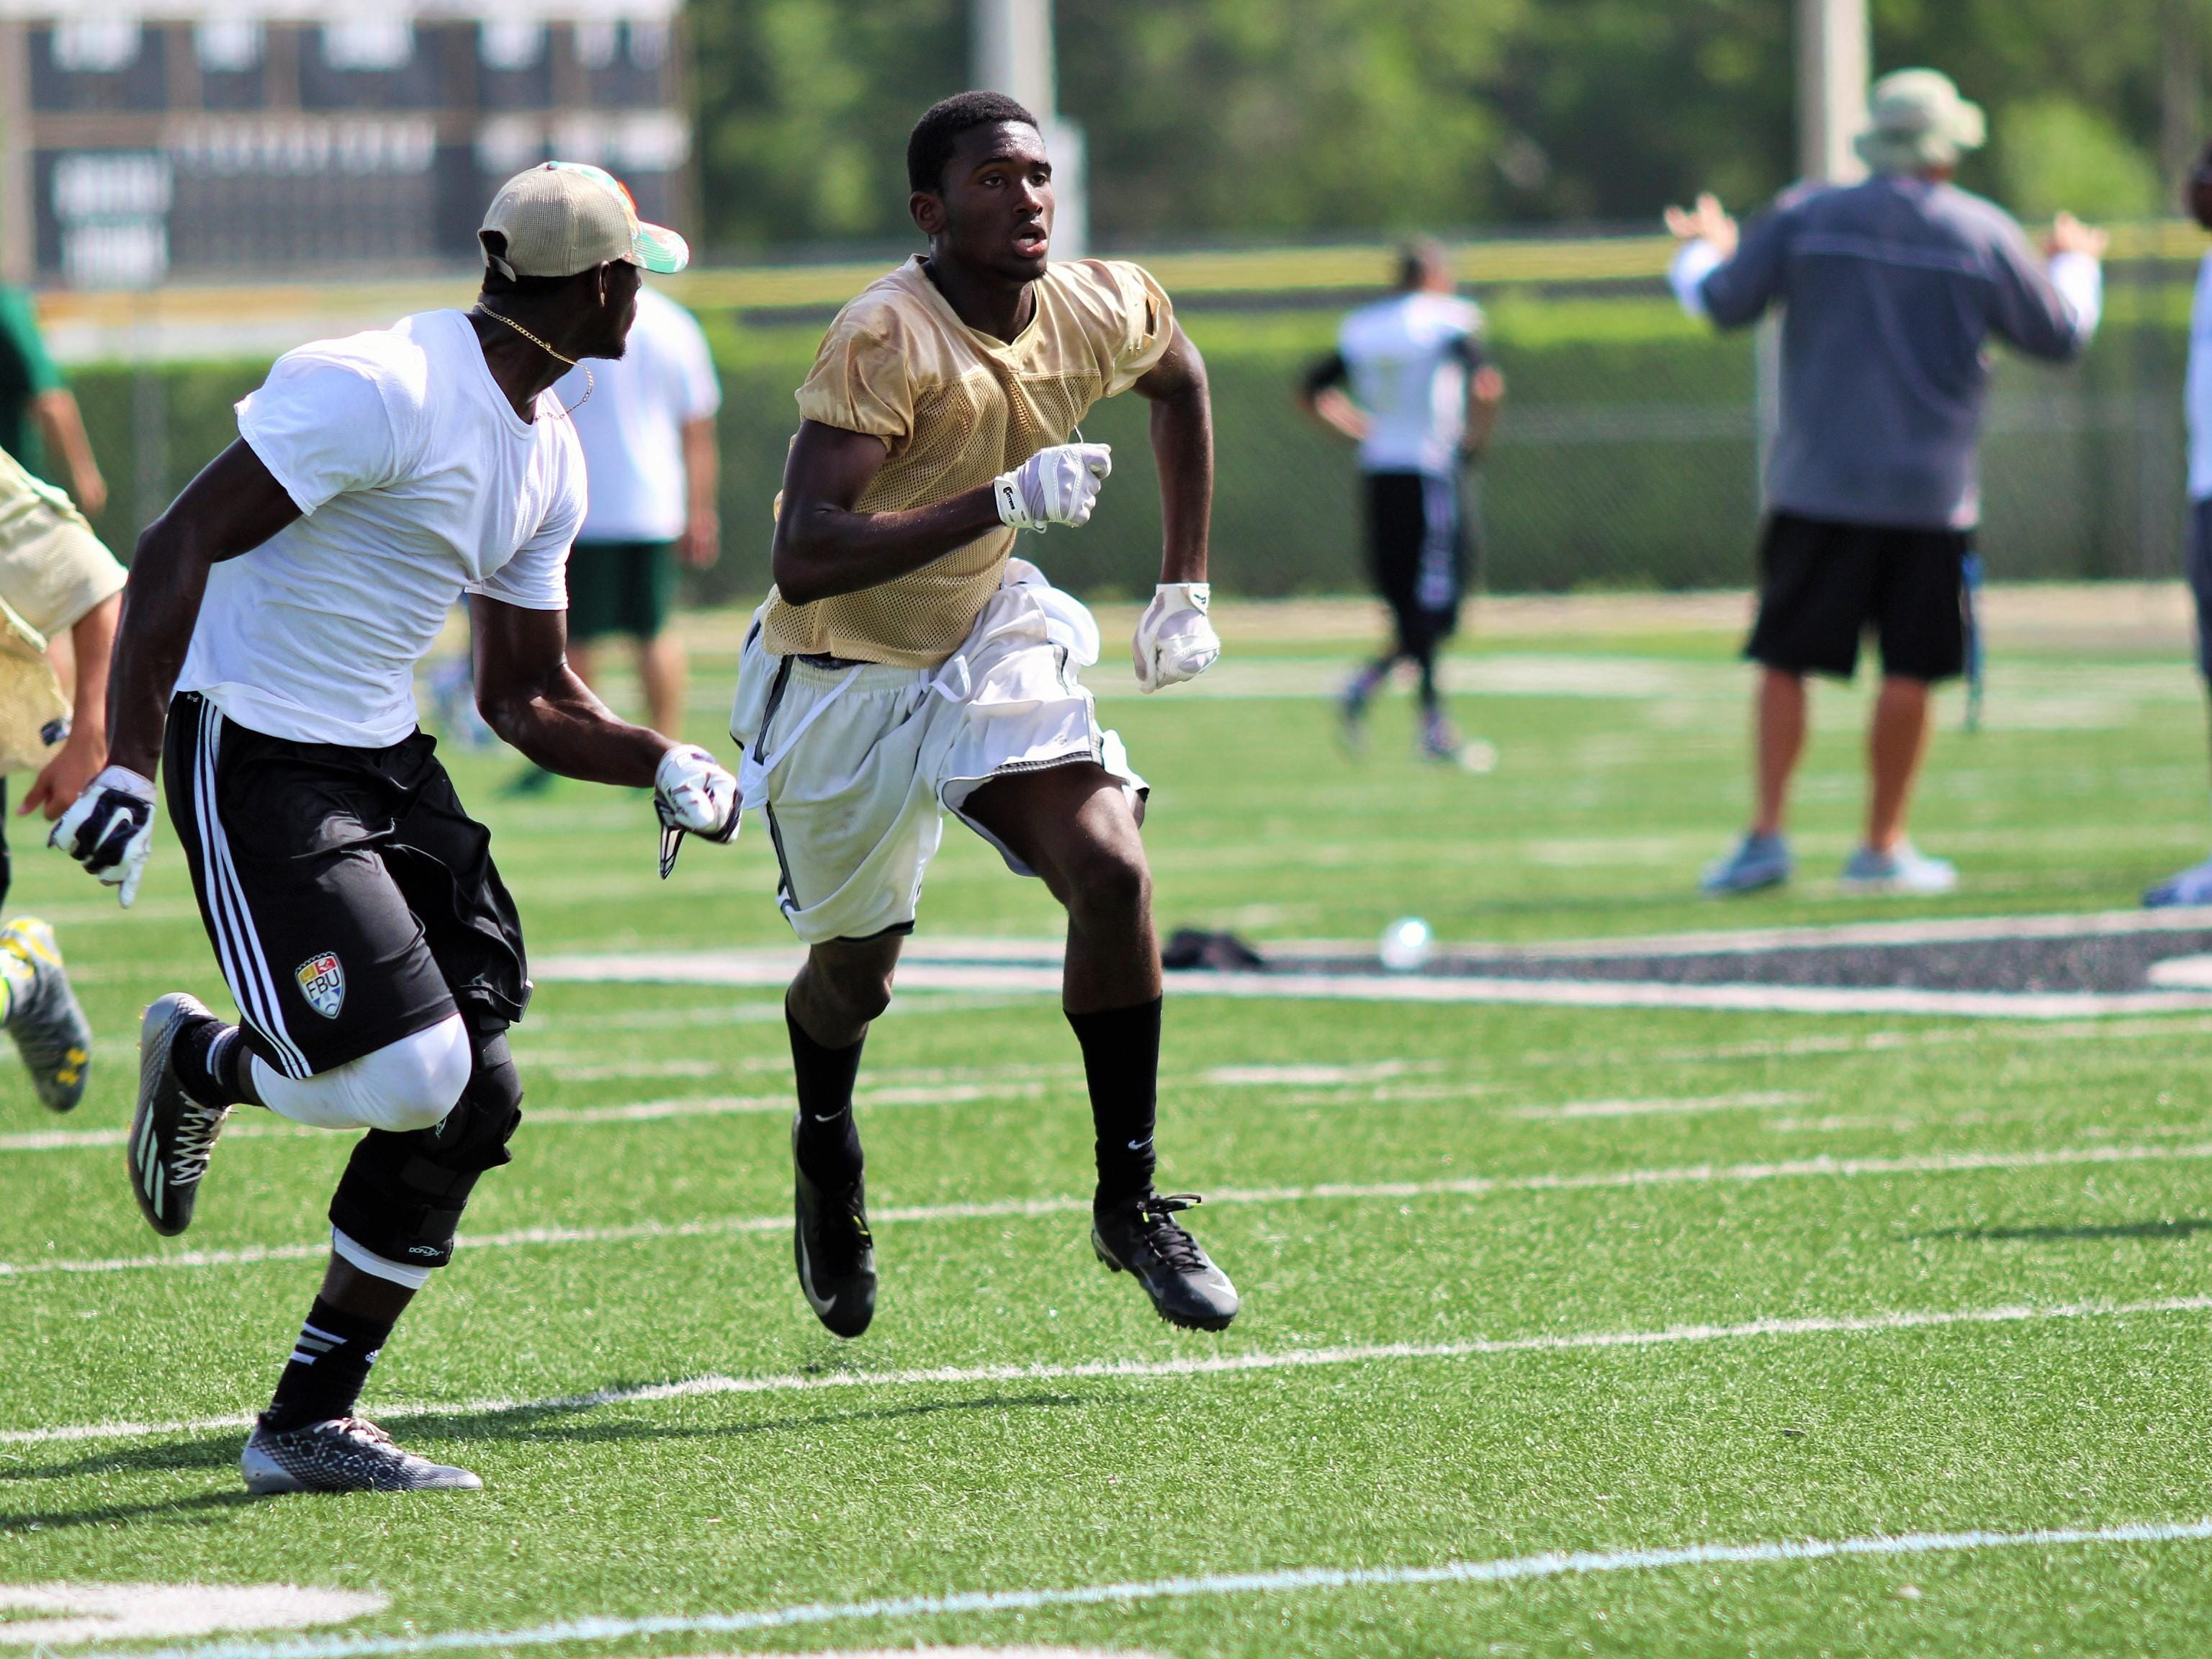 Golden Gate wide receiver Patrick Volcy runs a play during a 7-on-7 game at Golden Gate High School on July 8, 2015.